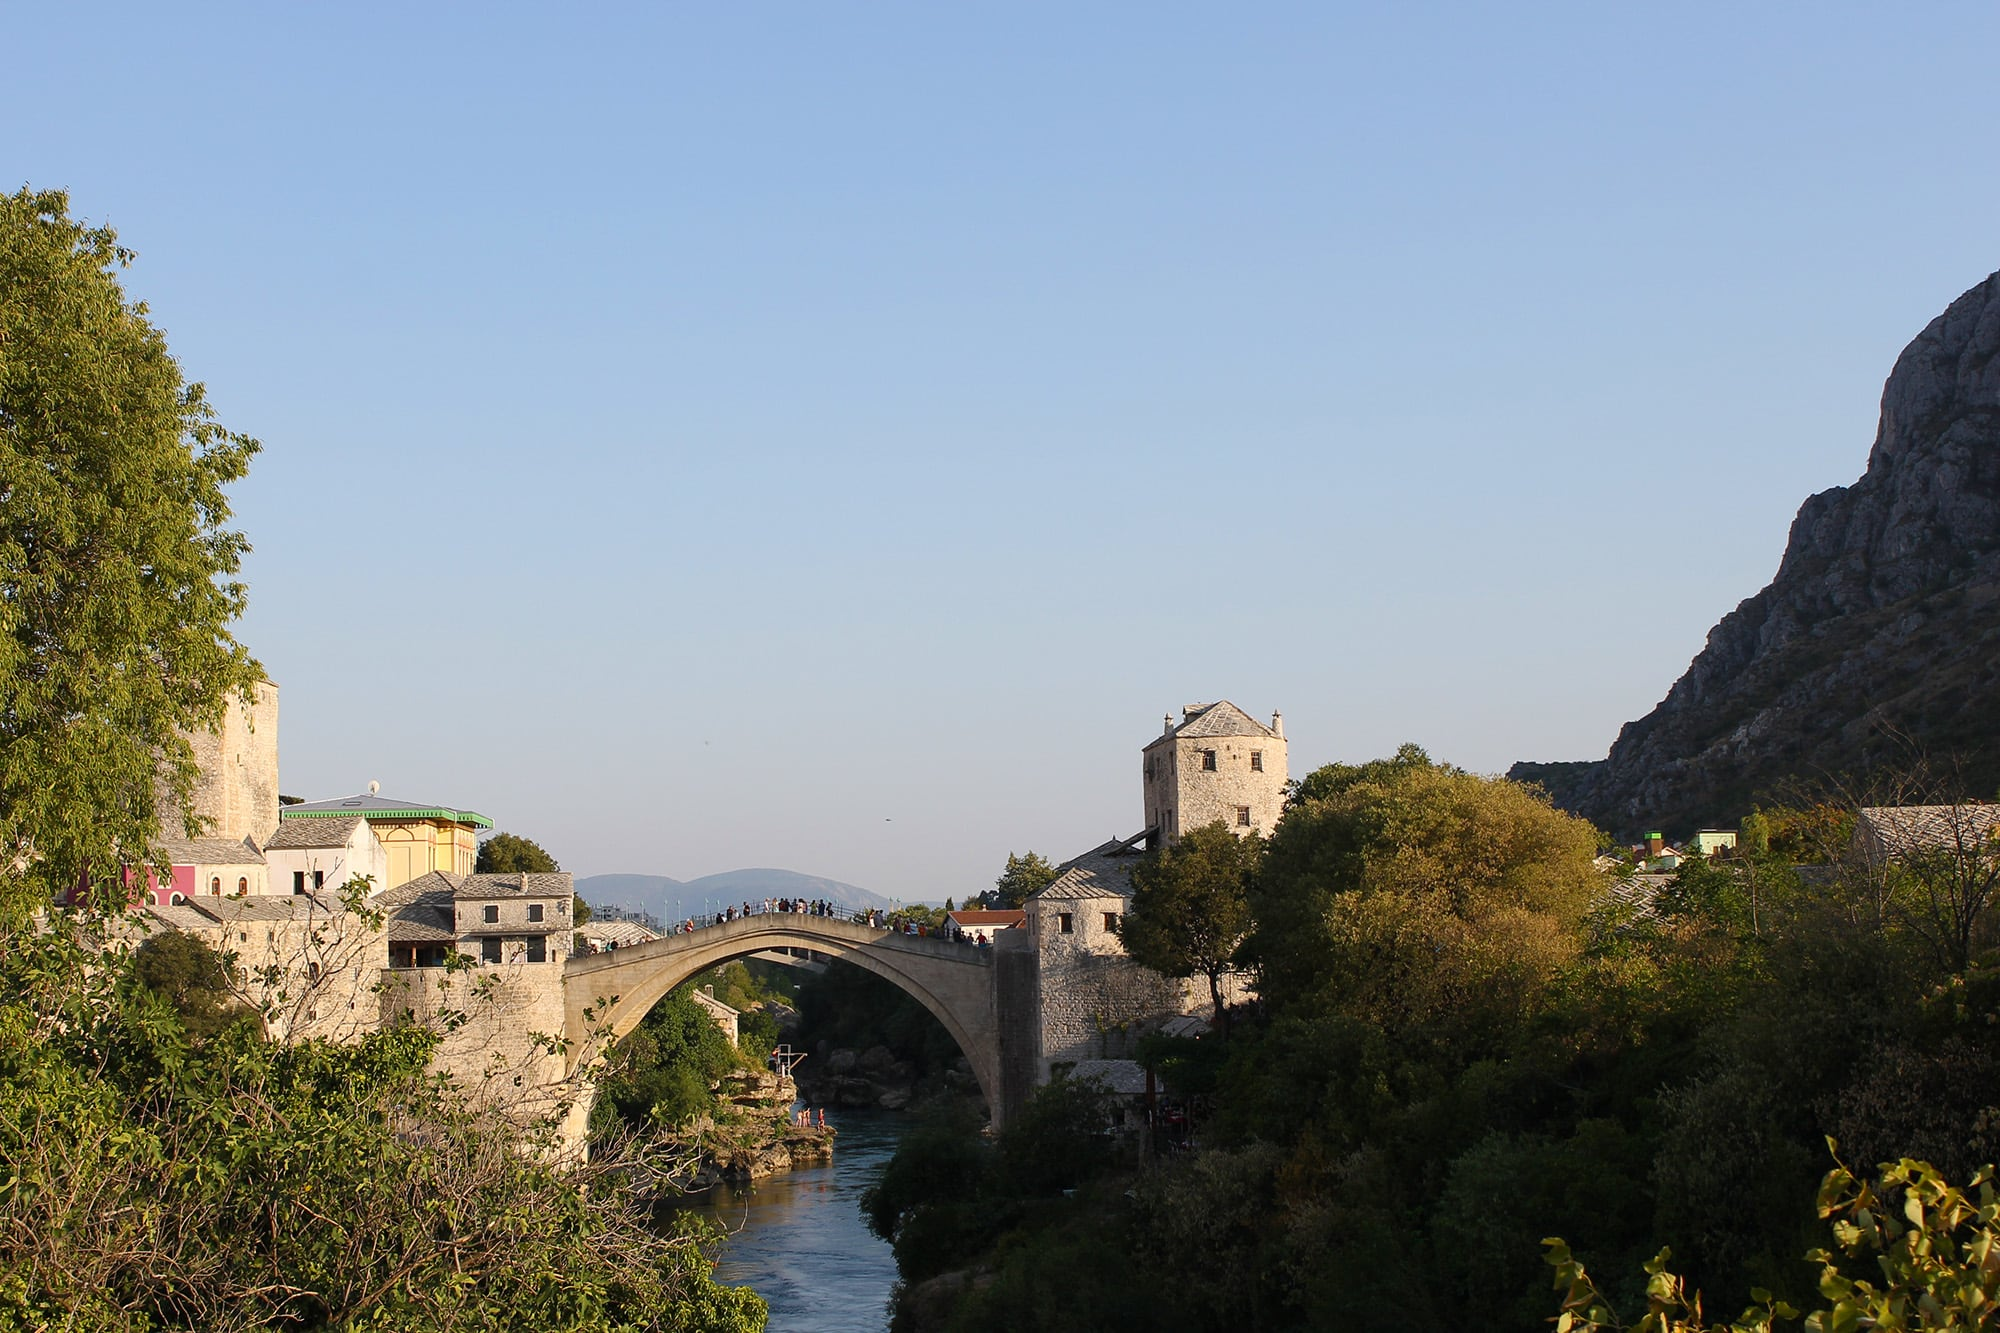 The famous bridge of Mostar